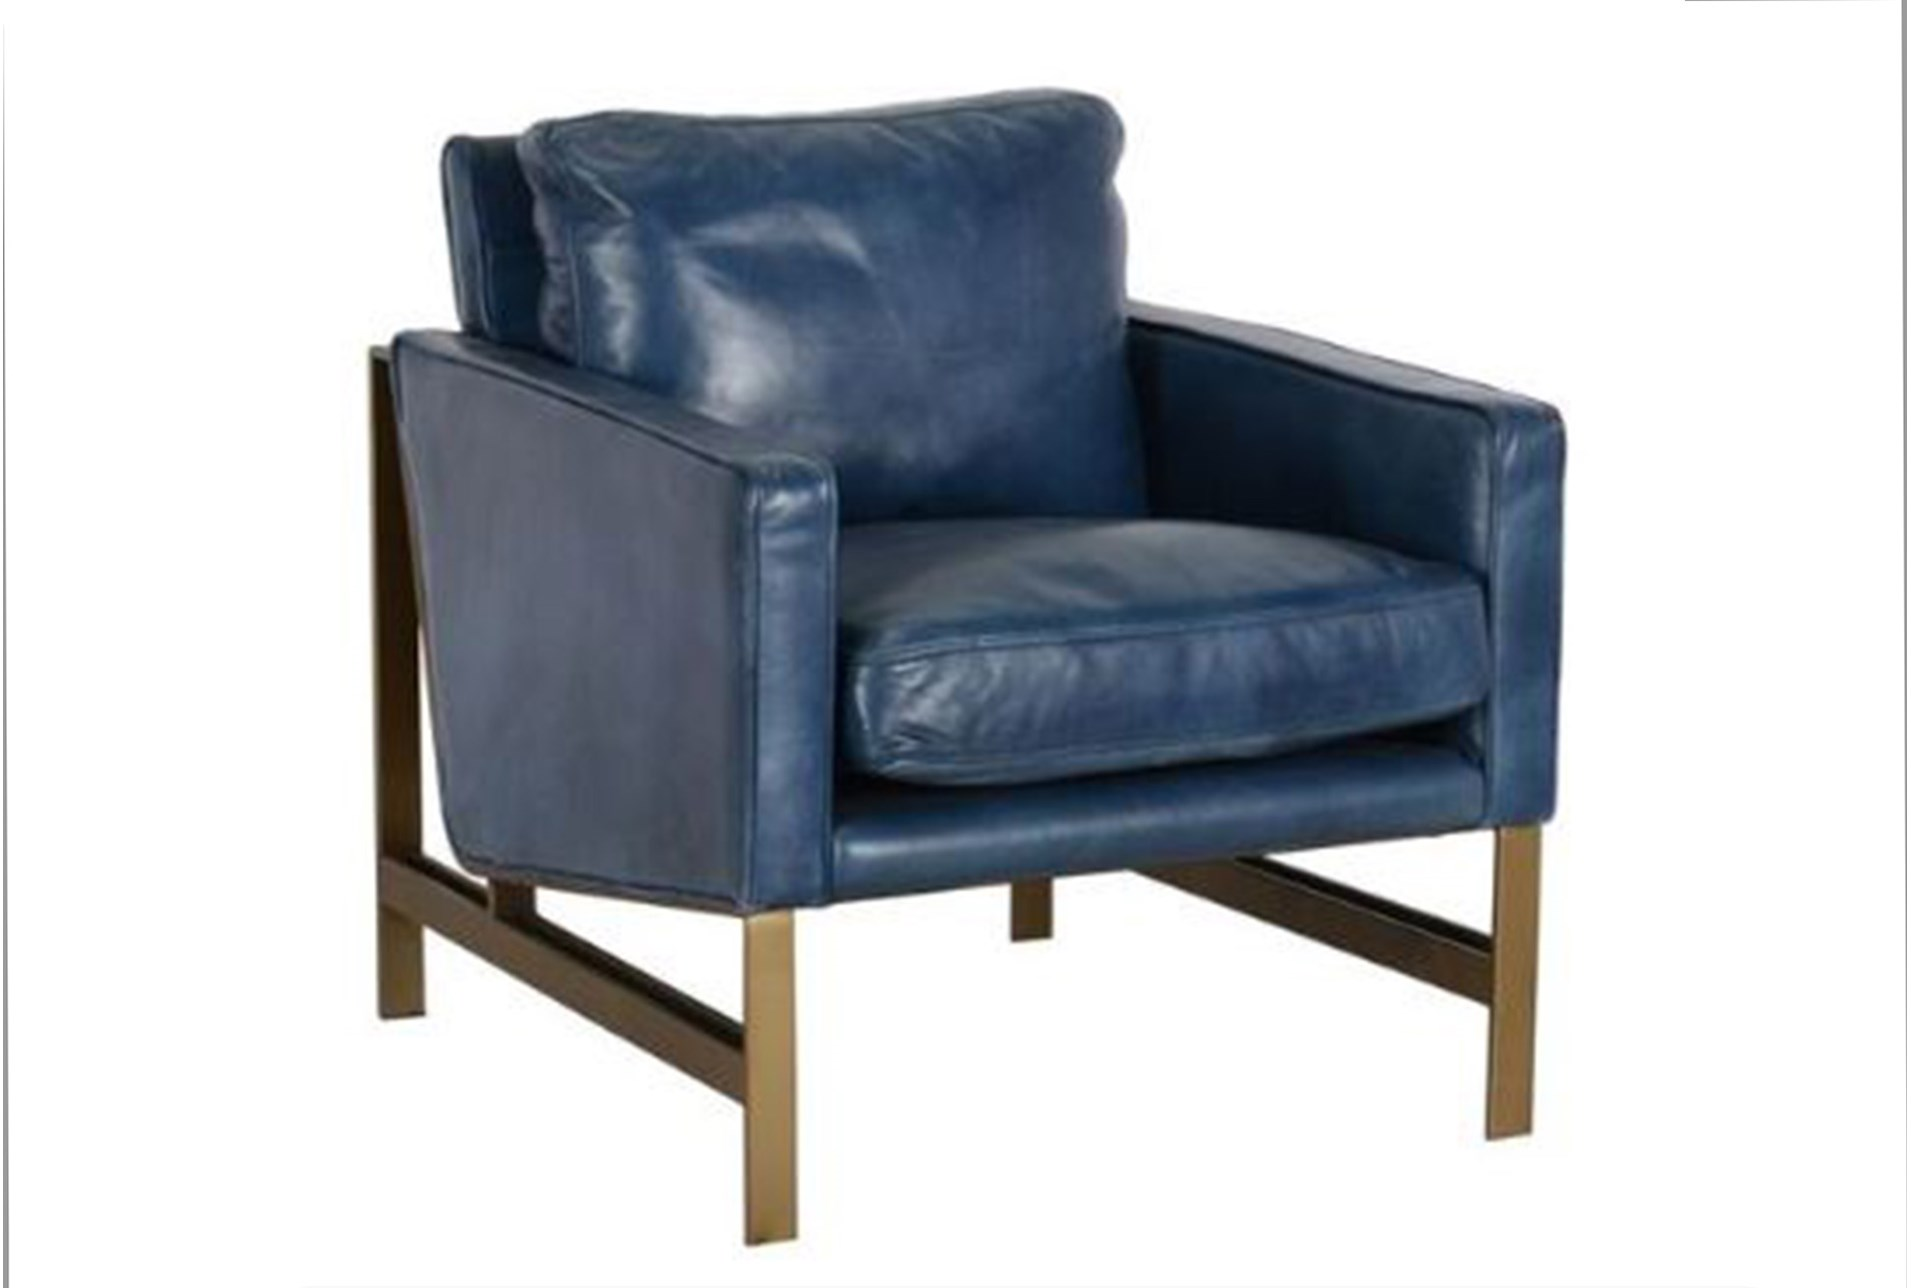 Blue Leather Club Chair 360 Elements View Size Large